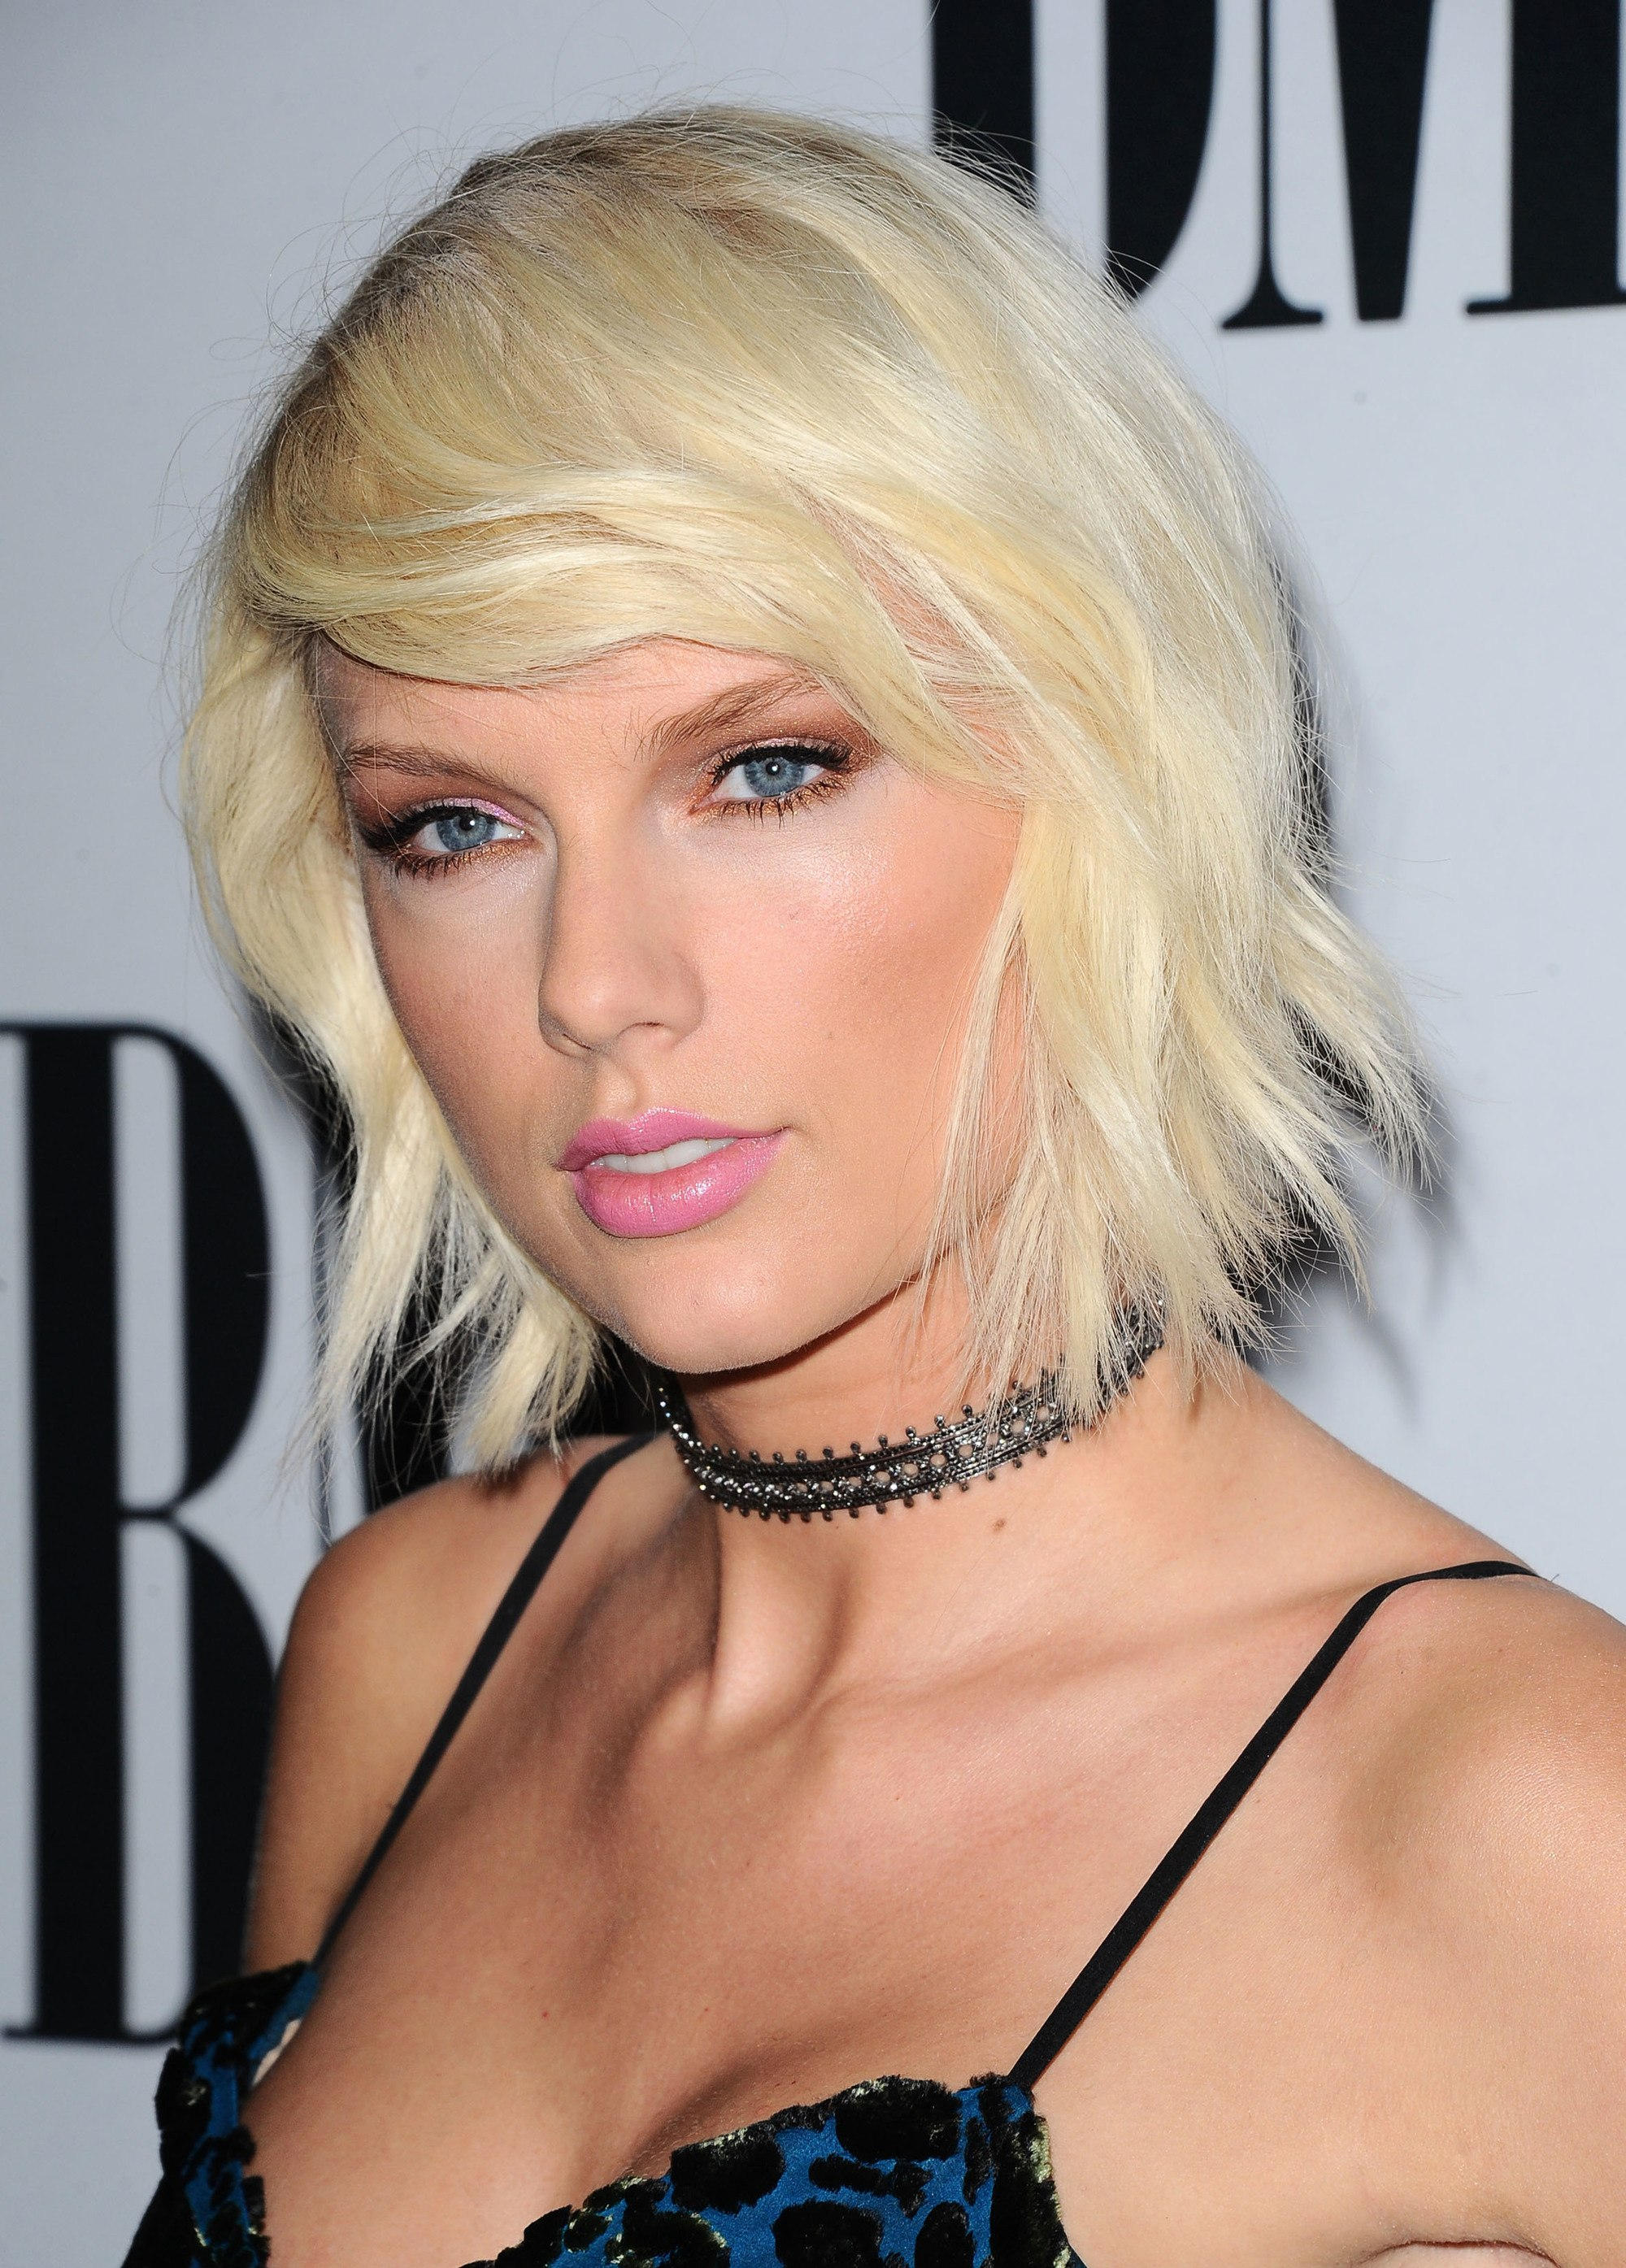 singer taylor swift with platinum blonde short hair